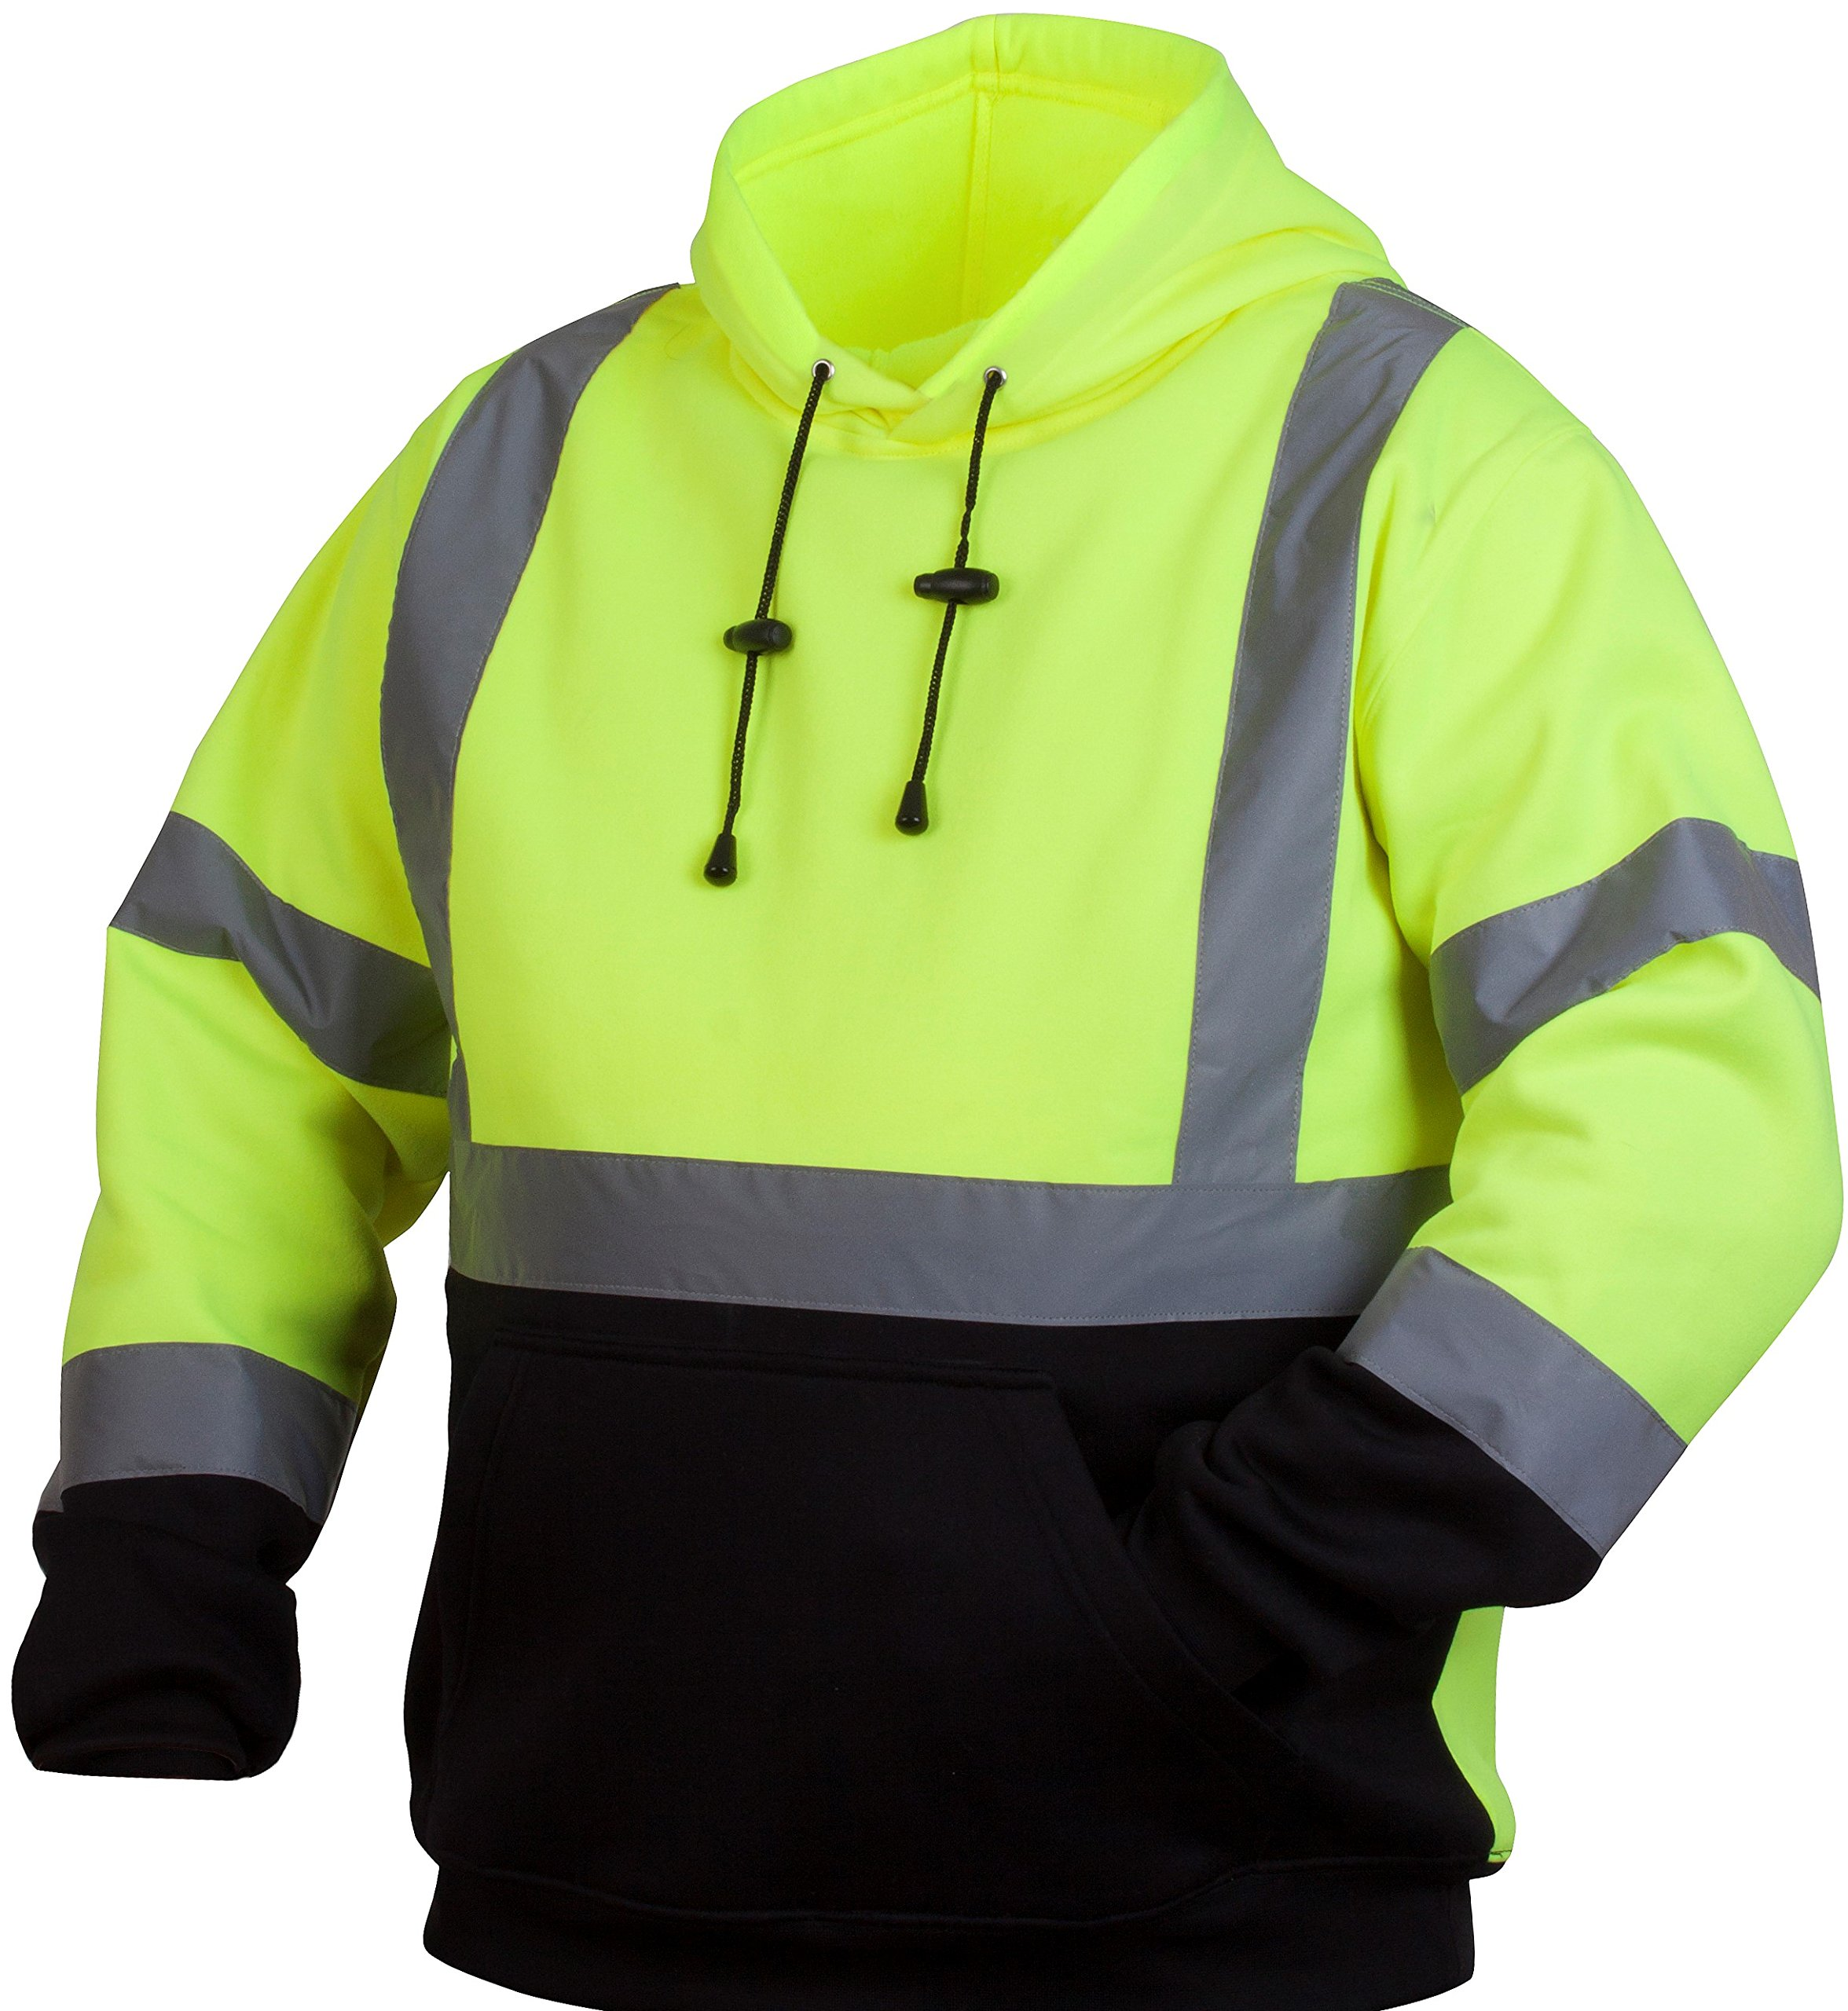 Pyramex RSSH3210XL Hi-Vis Lime SAFETY Pullover Sweatshirt with Black Bottom, Extra Large, Green by Pyramex Safety